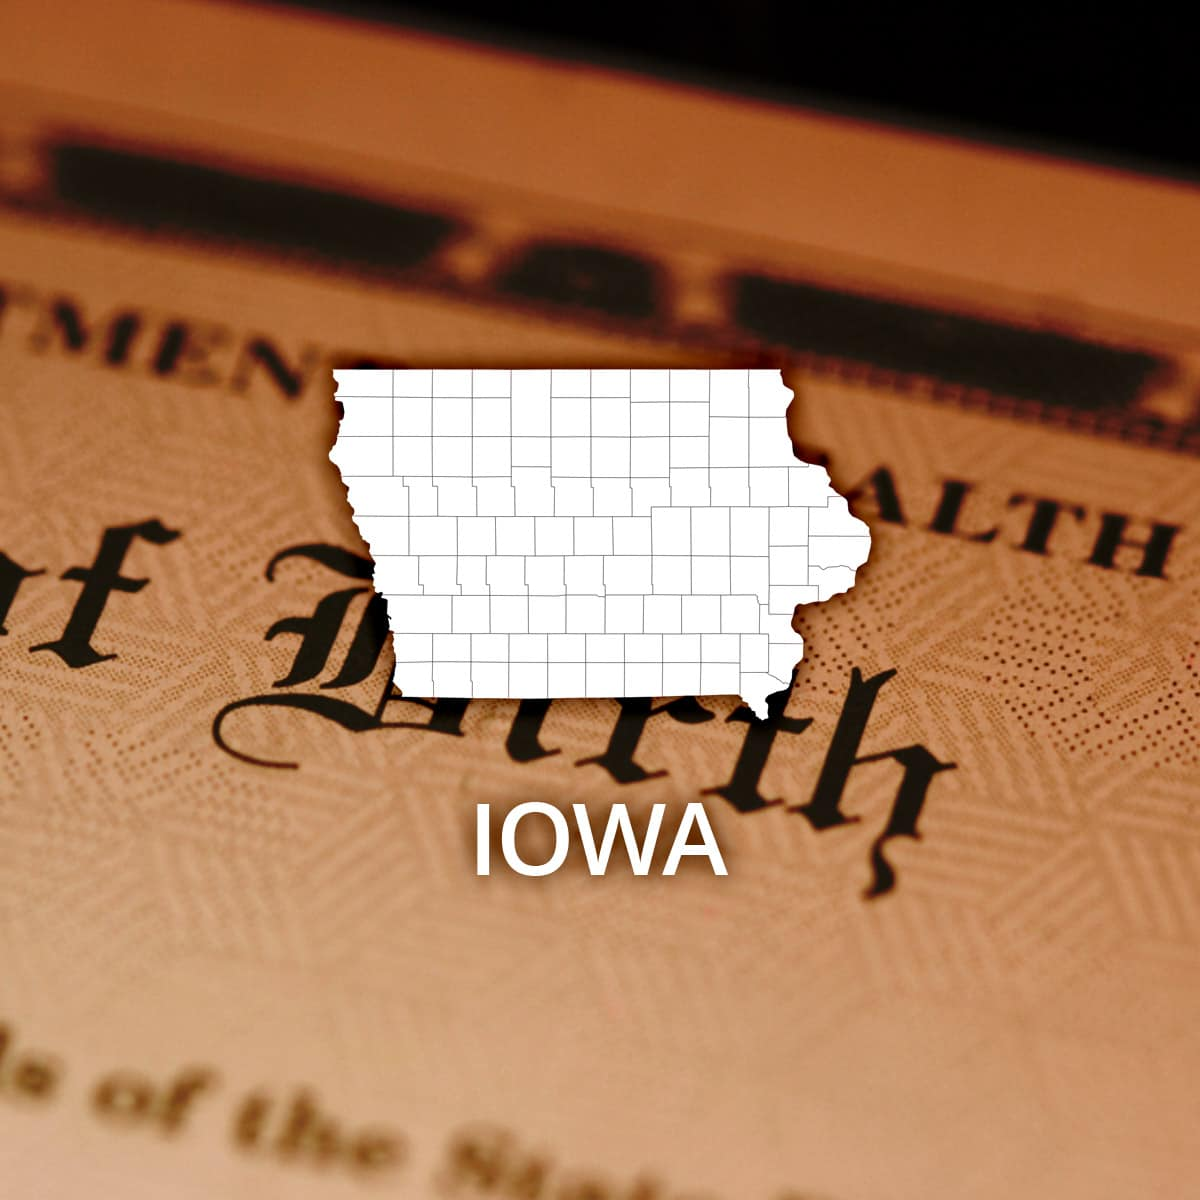 Where to Obtain an Iowa Birth Certificate